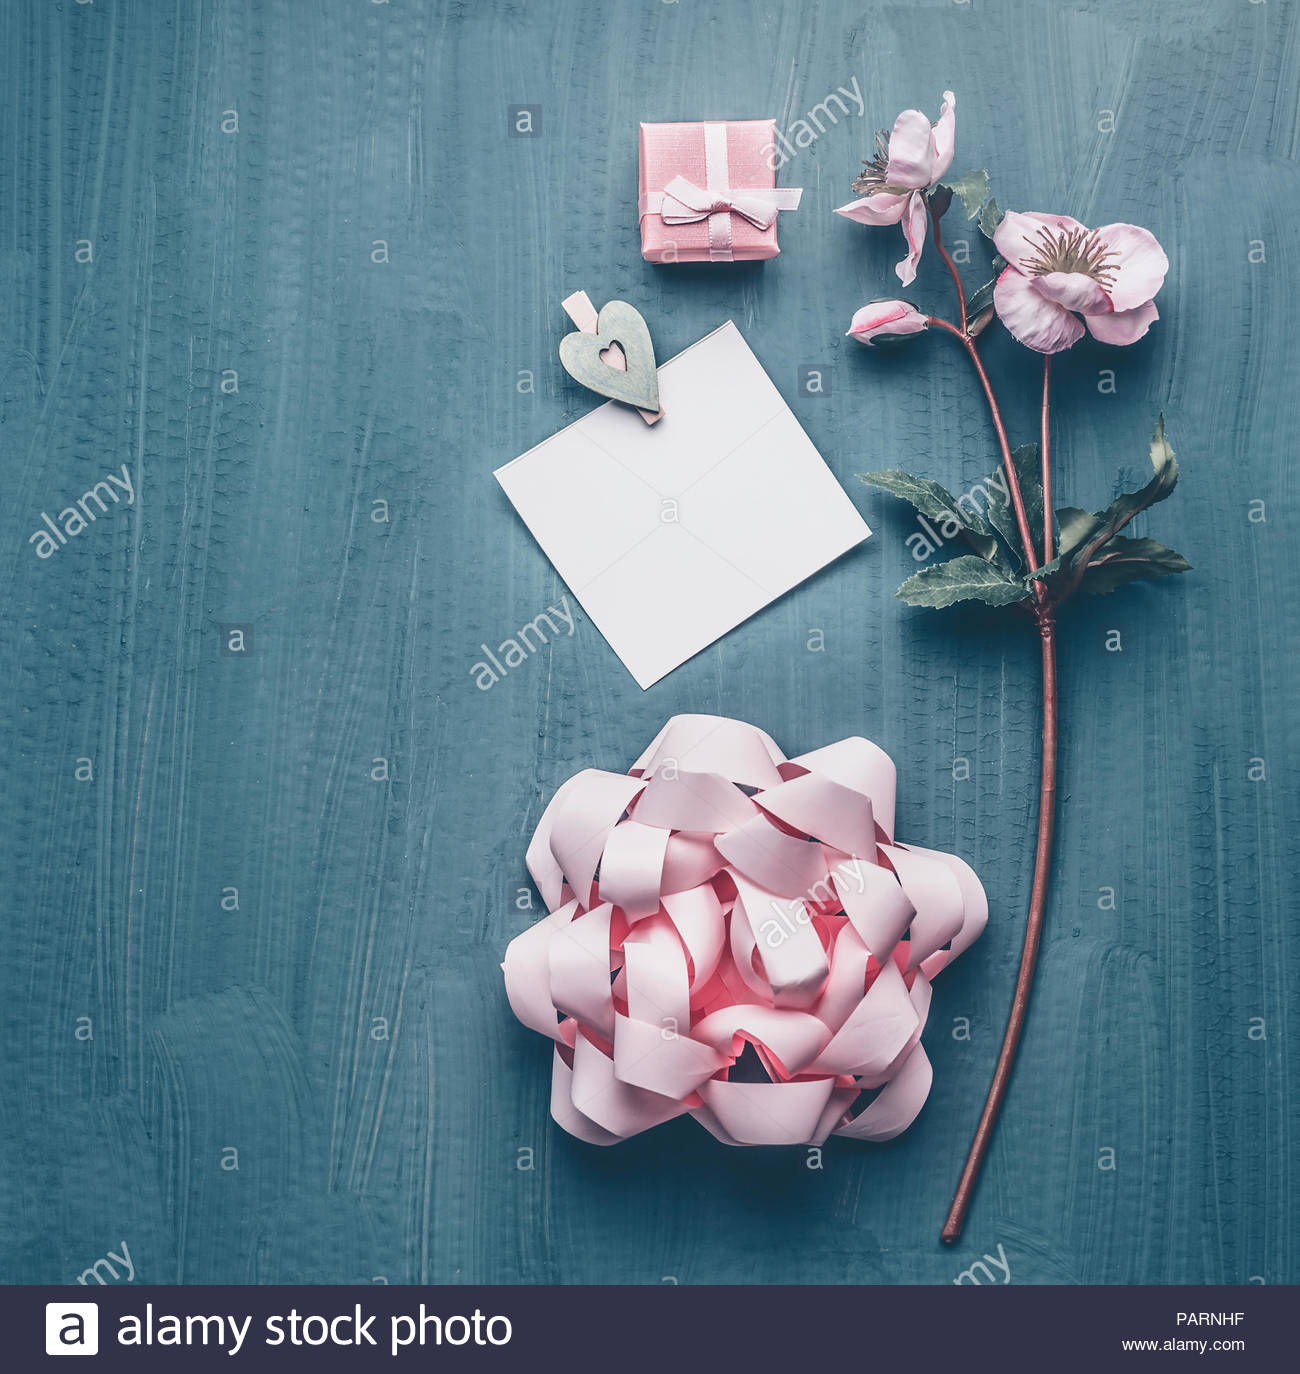 High angle view of pink still life objects on a table - Stock Image